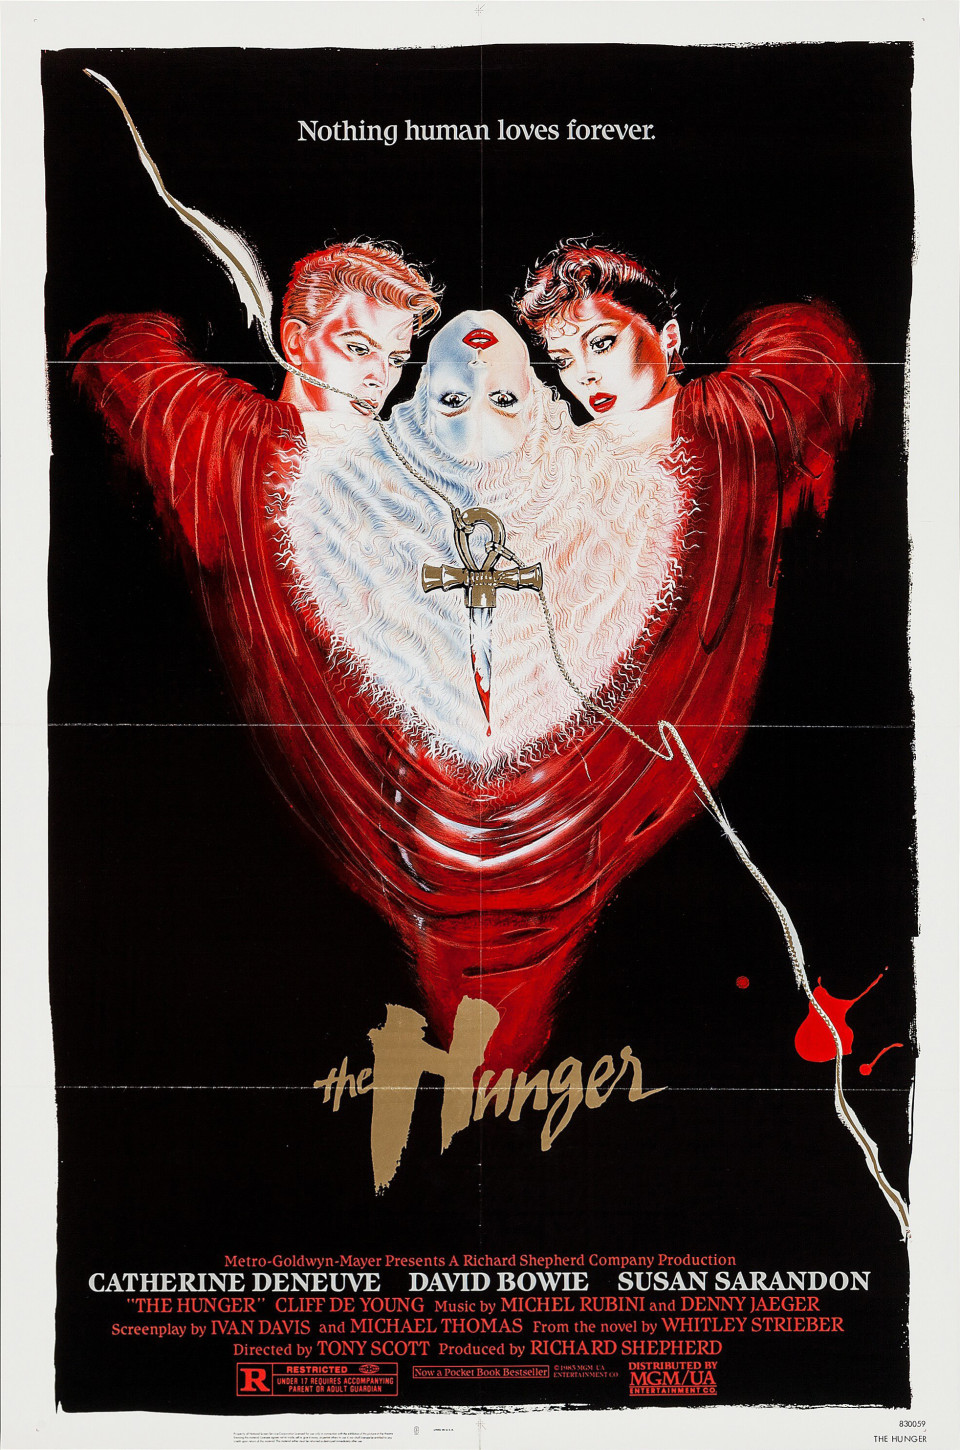 003-1983-Hunger-US-HA